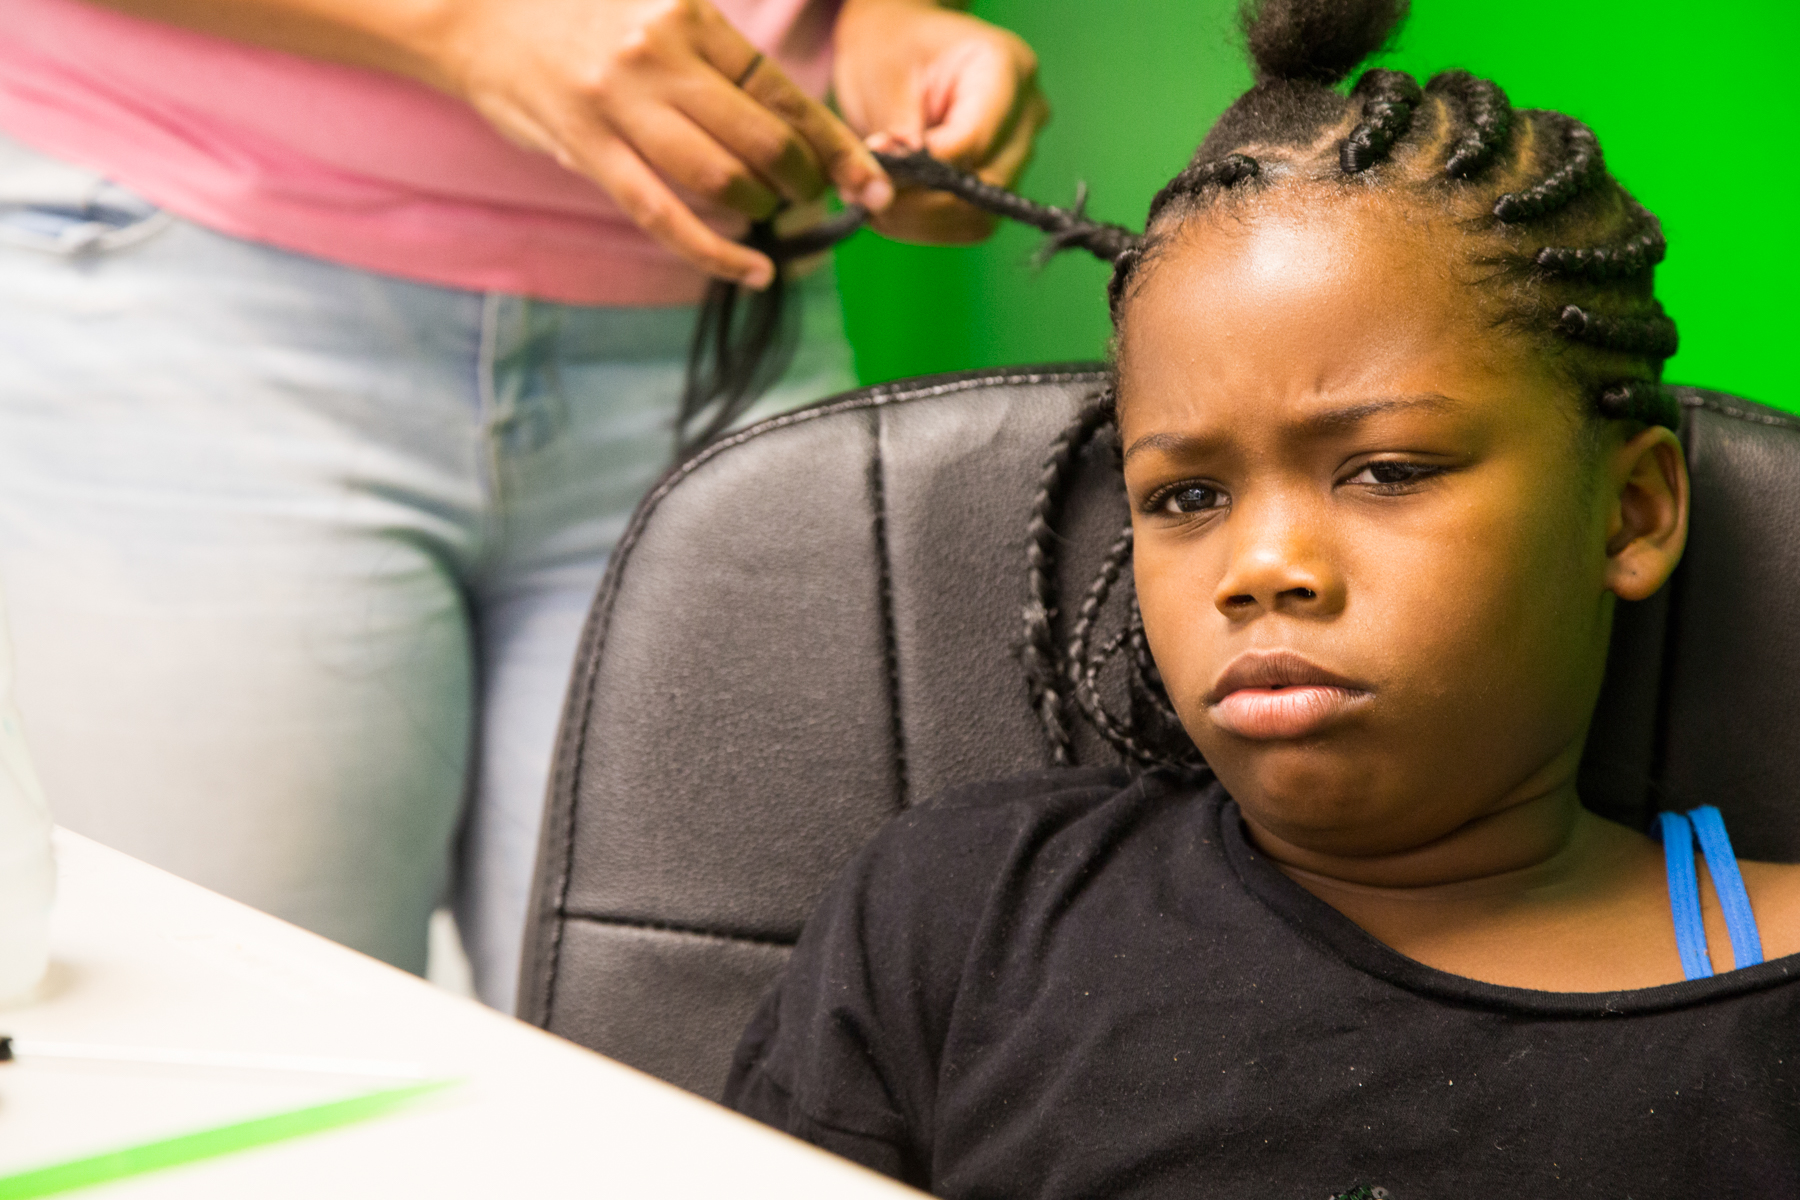 "After more than an hour, Jemiah Frye just wanted to be done. Her stylist, Misha Starks, remembers getting her own hair braided as a young child. ""It just took too long, I just wanted to get up. Once they sit here for a while, they get all fidgety,"" said Starks. Jemiah braids the hair on her dolls and toy ponies. (John Fecile/WBEZ)"